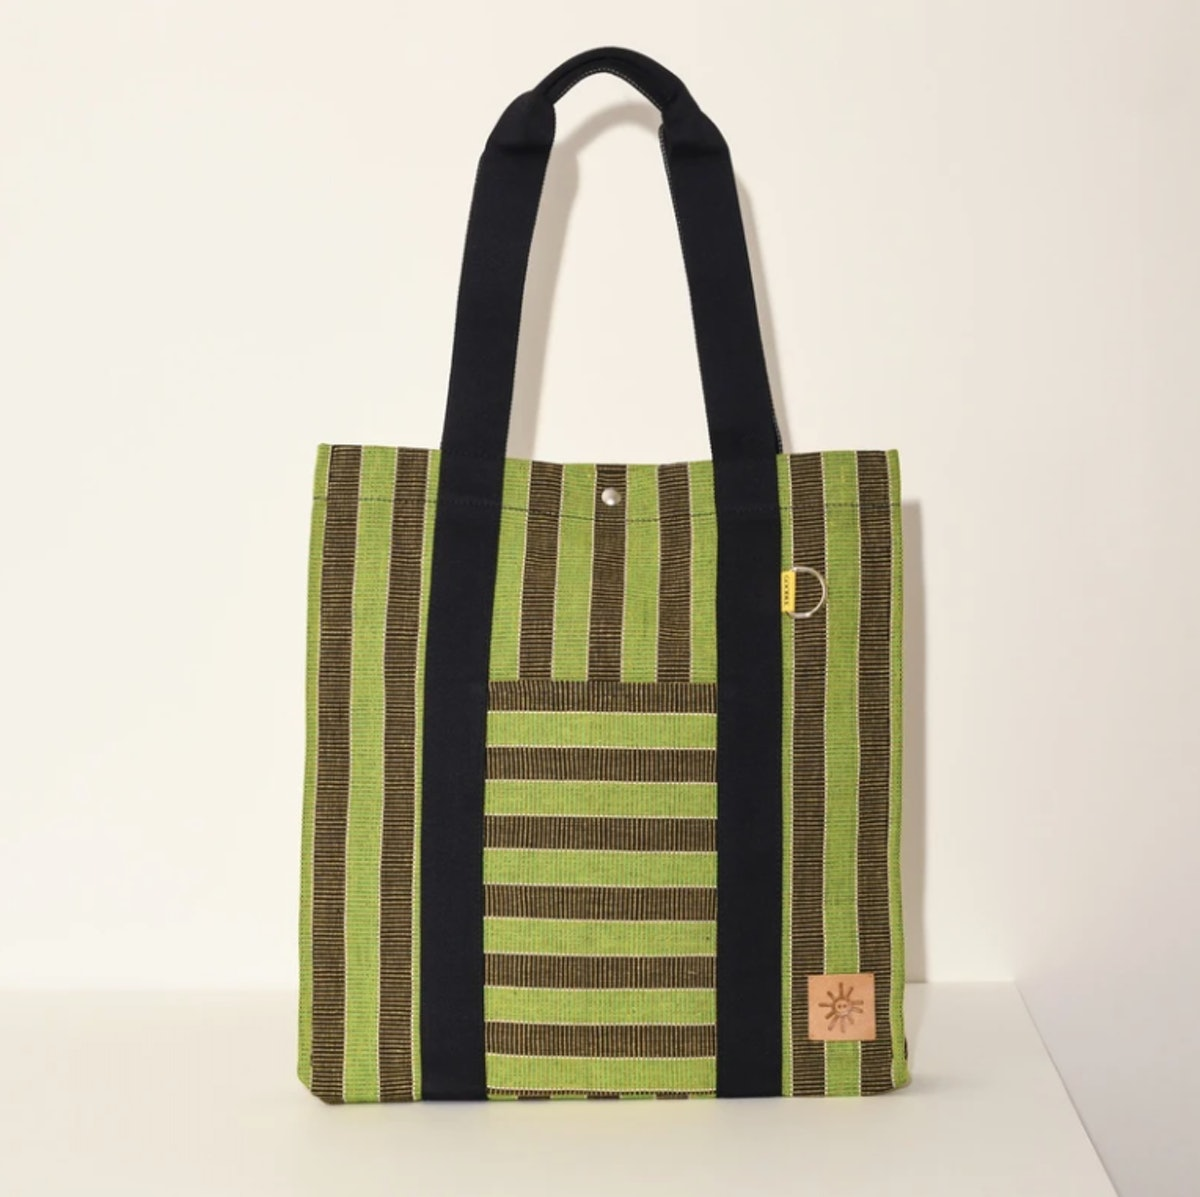 Goodee's Bassi Market Tote in Green and Mimosa Stripe that can hold a laptop.